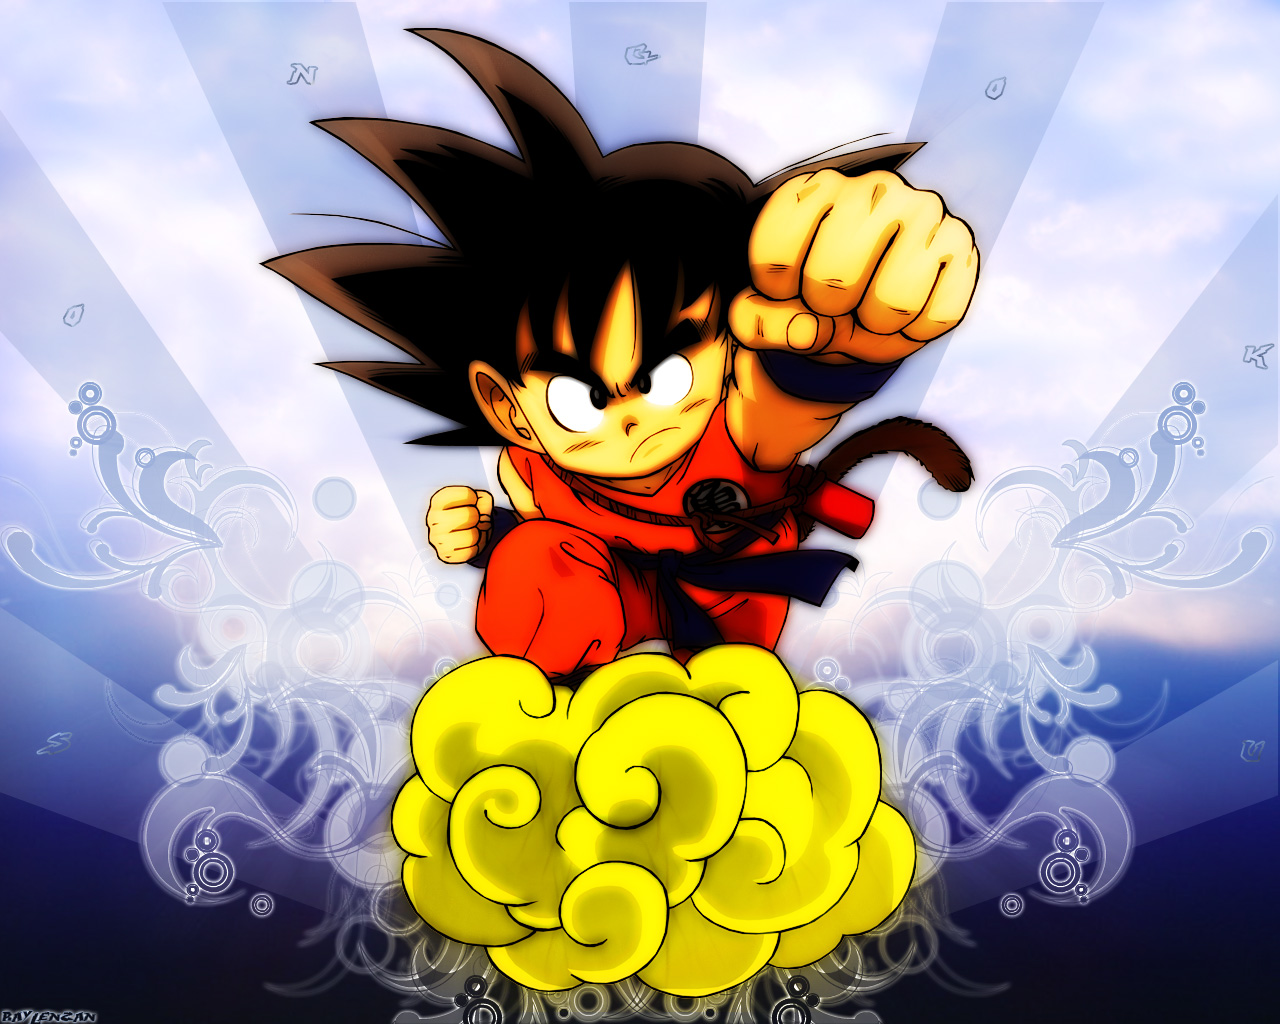 http://2.bp.blogspot.com/-DiPXfJhlNoc/Td6kxLQtg3I/AAAAAAAAAAY/yUdeUtE7Y3M/s1600/6851_dragon_ball_z_hd_wallpapers.jpg